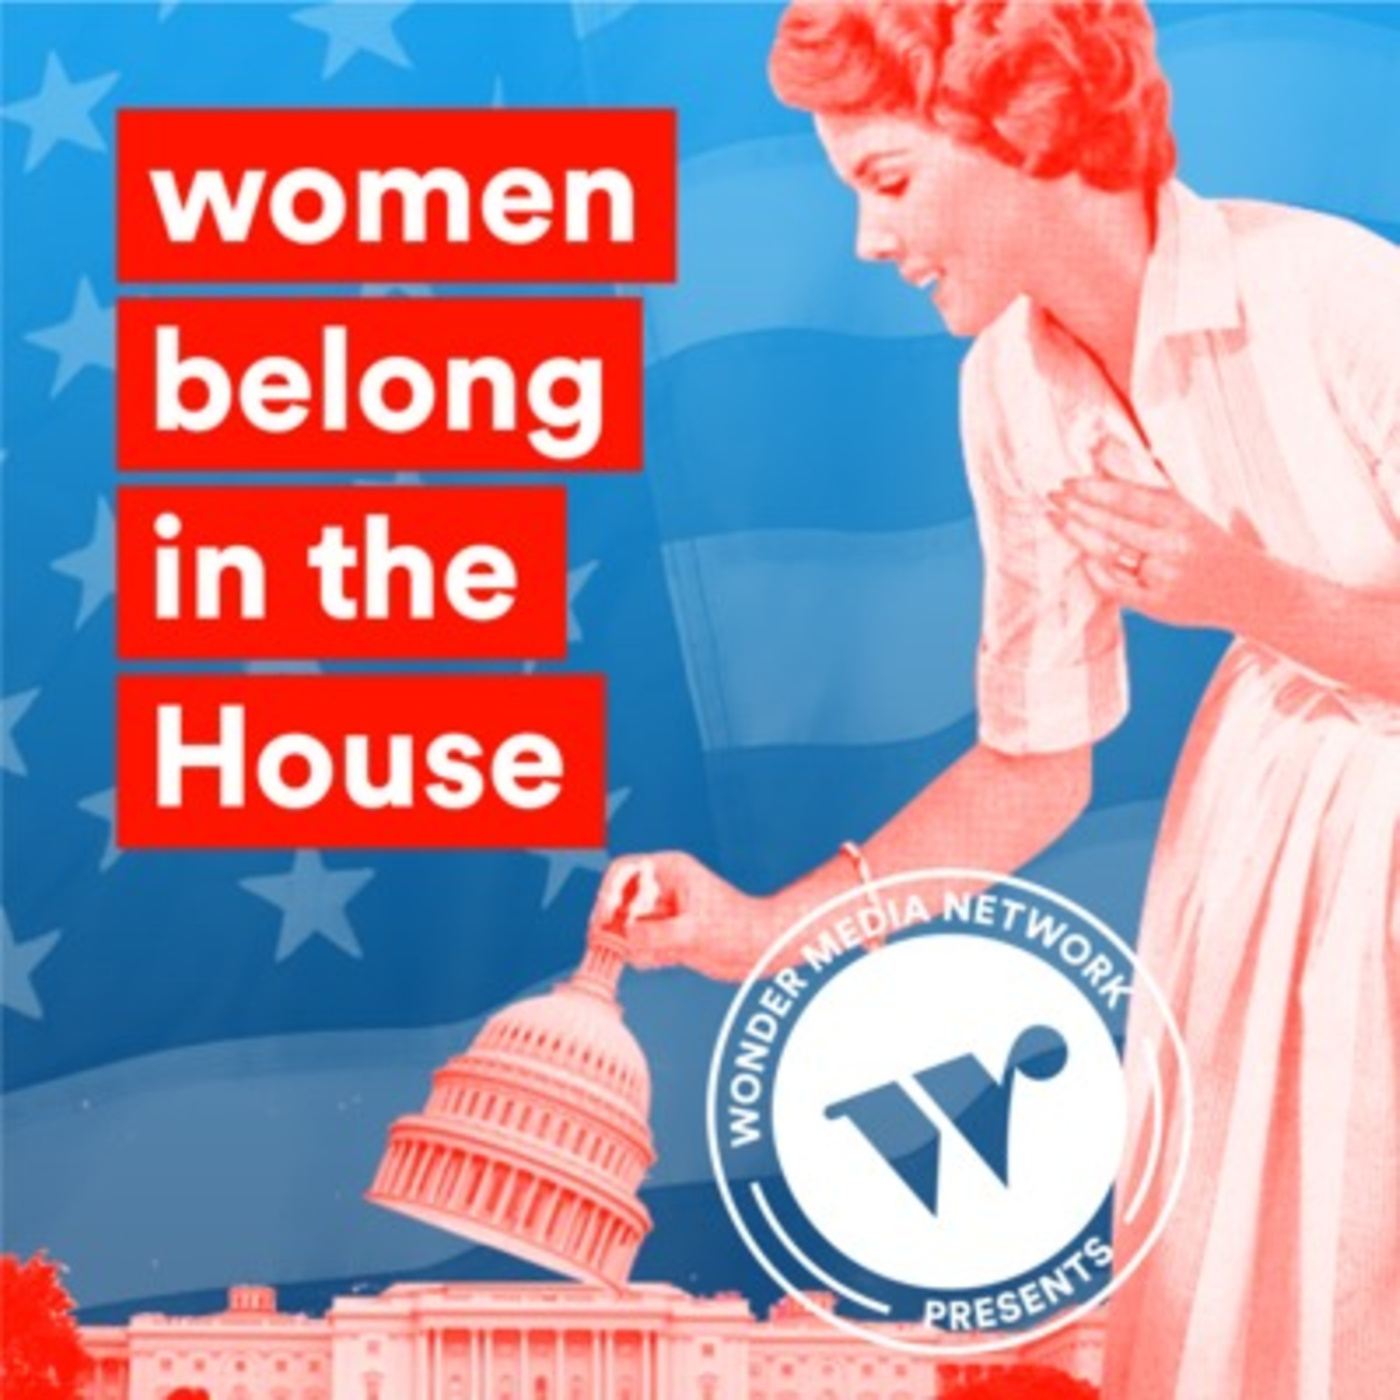 Bonus Ep. 4: NWP Equality Salon - Gender, Race, and American Politics in 2018